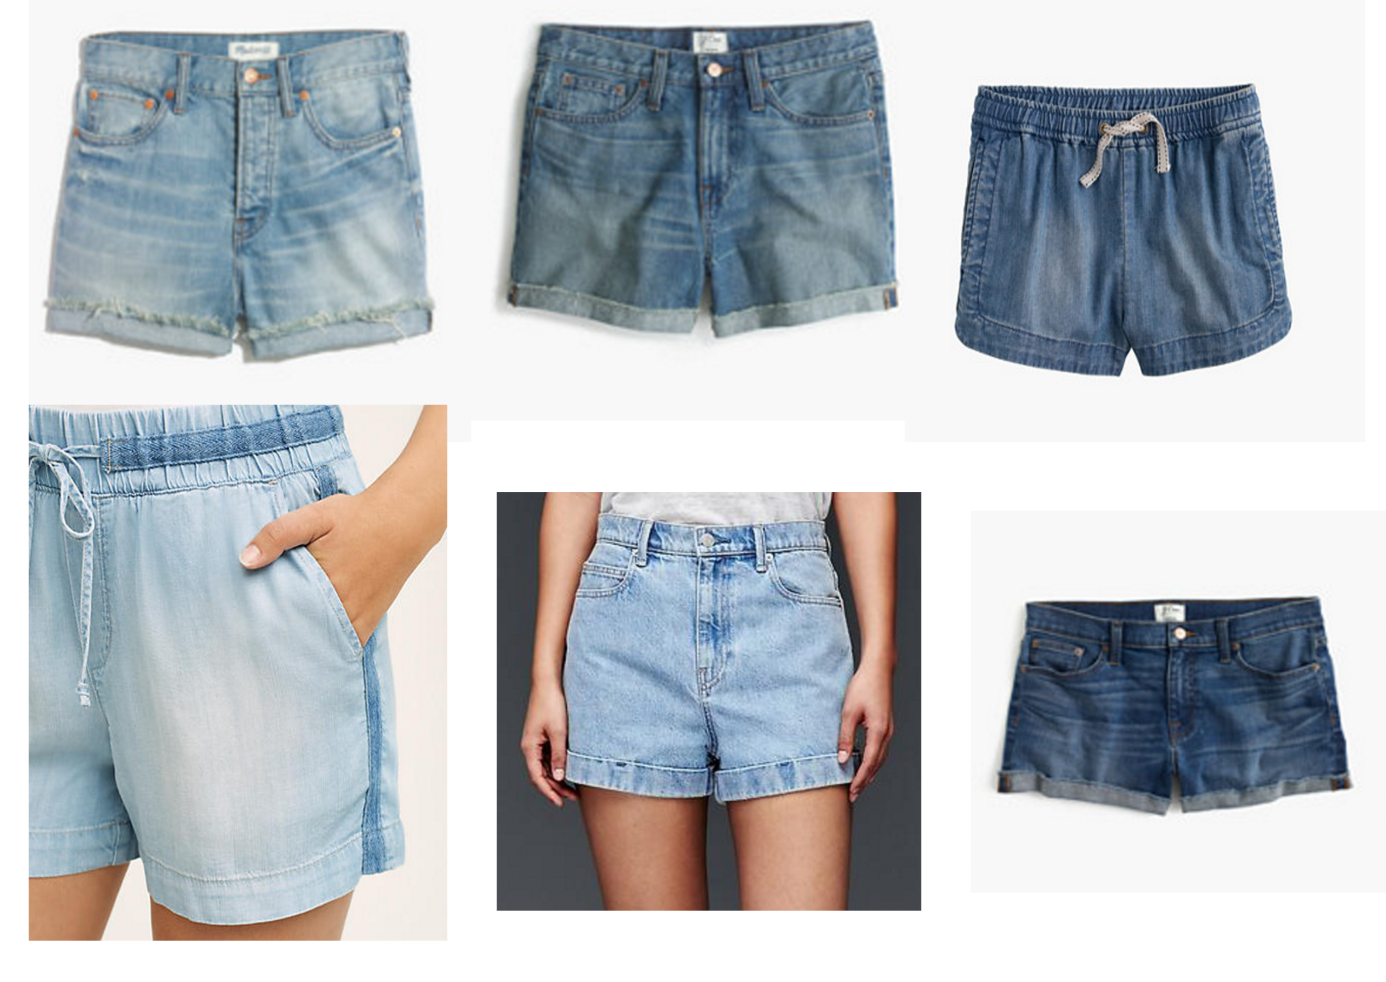 From left to right:  Madewell  //  J. Crew //  J. Crew //  Anthropologie //  Gap  //  J. Crew